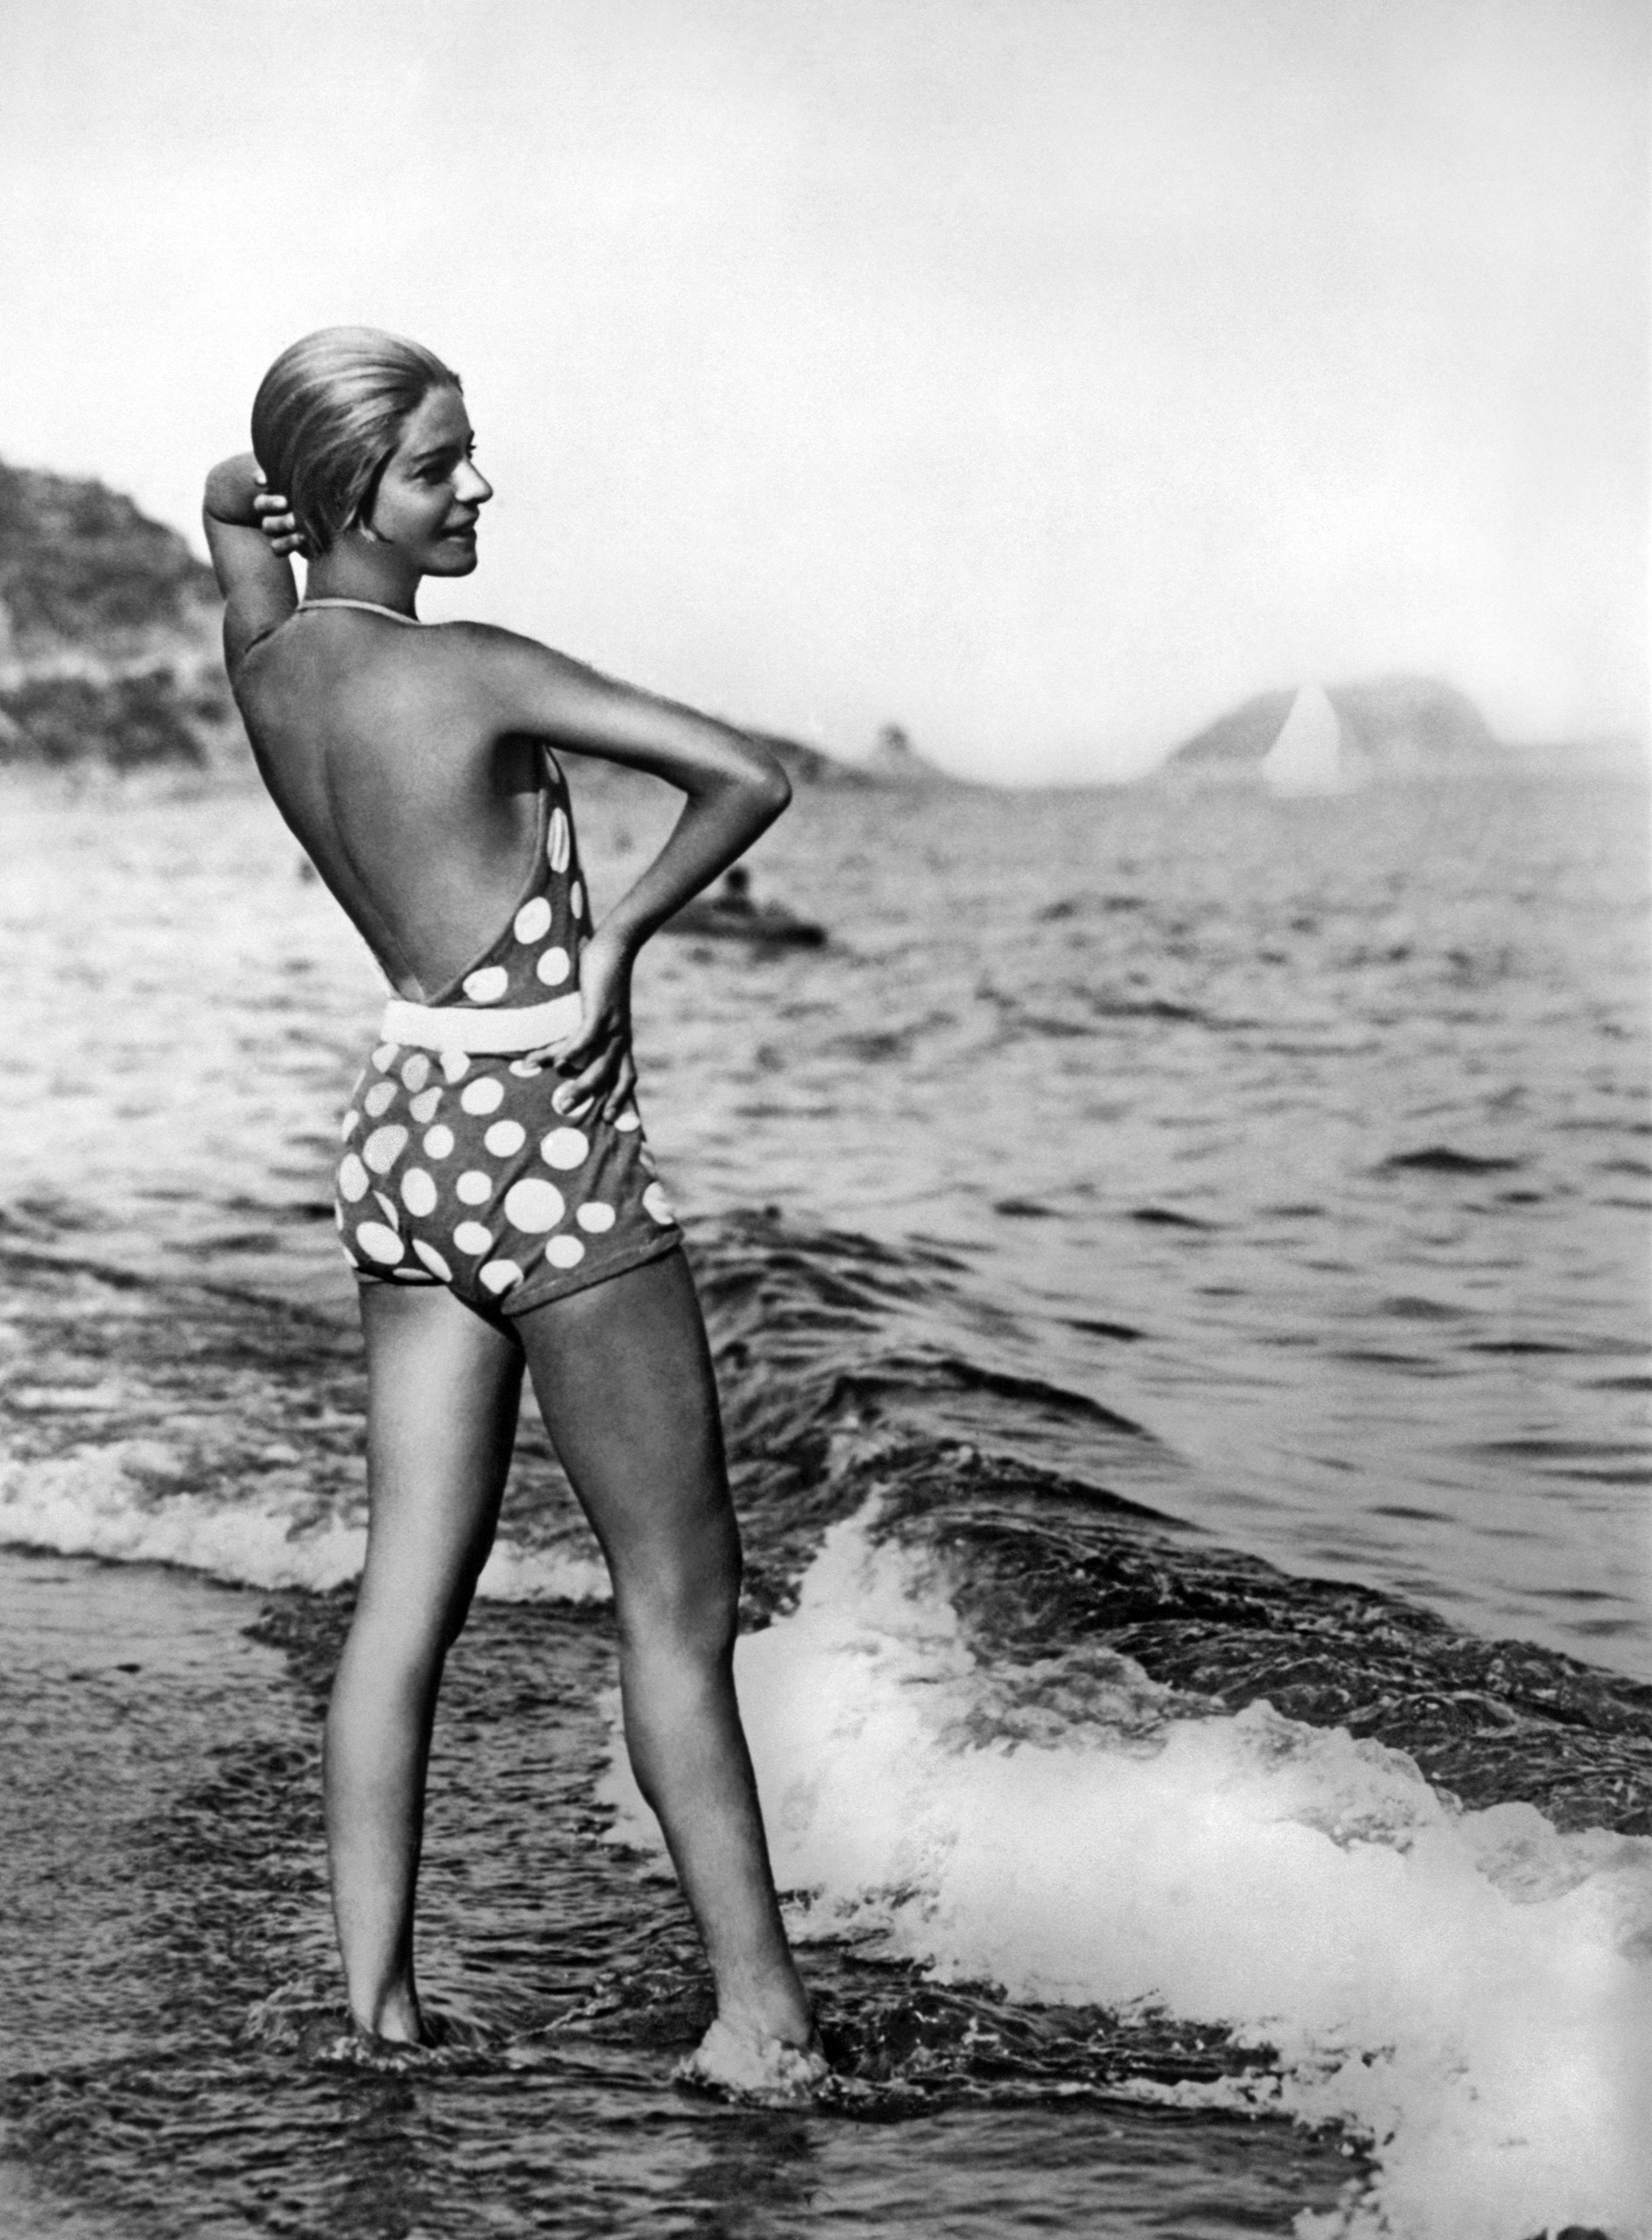 Dancer Alice Nikitina wearing a striking bathing suit at the beach in Alassio, Italy, circa 1929.